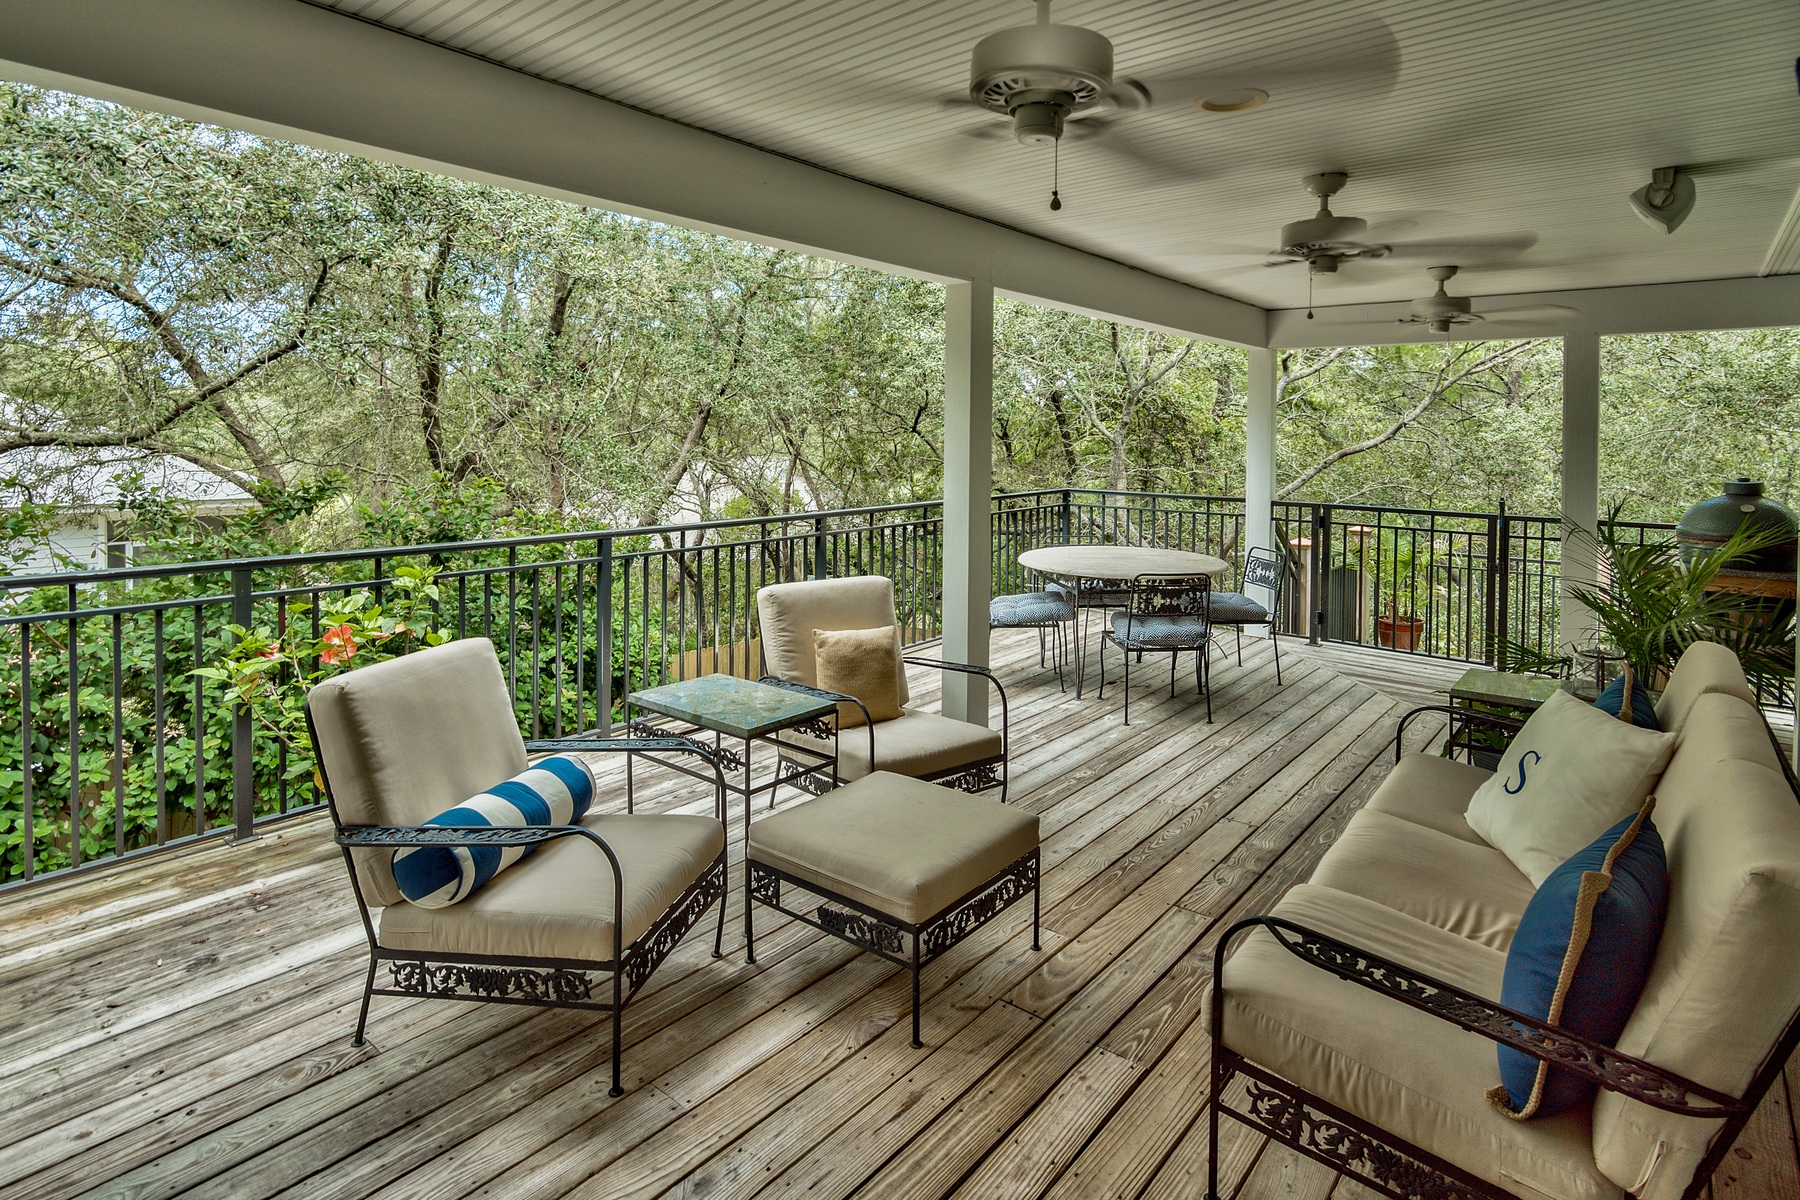 Single Family Home for Sale at REMODELED 30A RETREAT NEAR BEACH ACCESS 141 Crescent Road, Santa Rosa Beach, Florida, 32459 United States